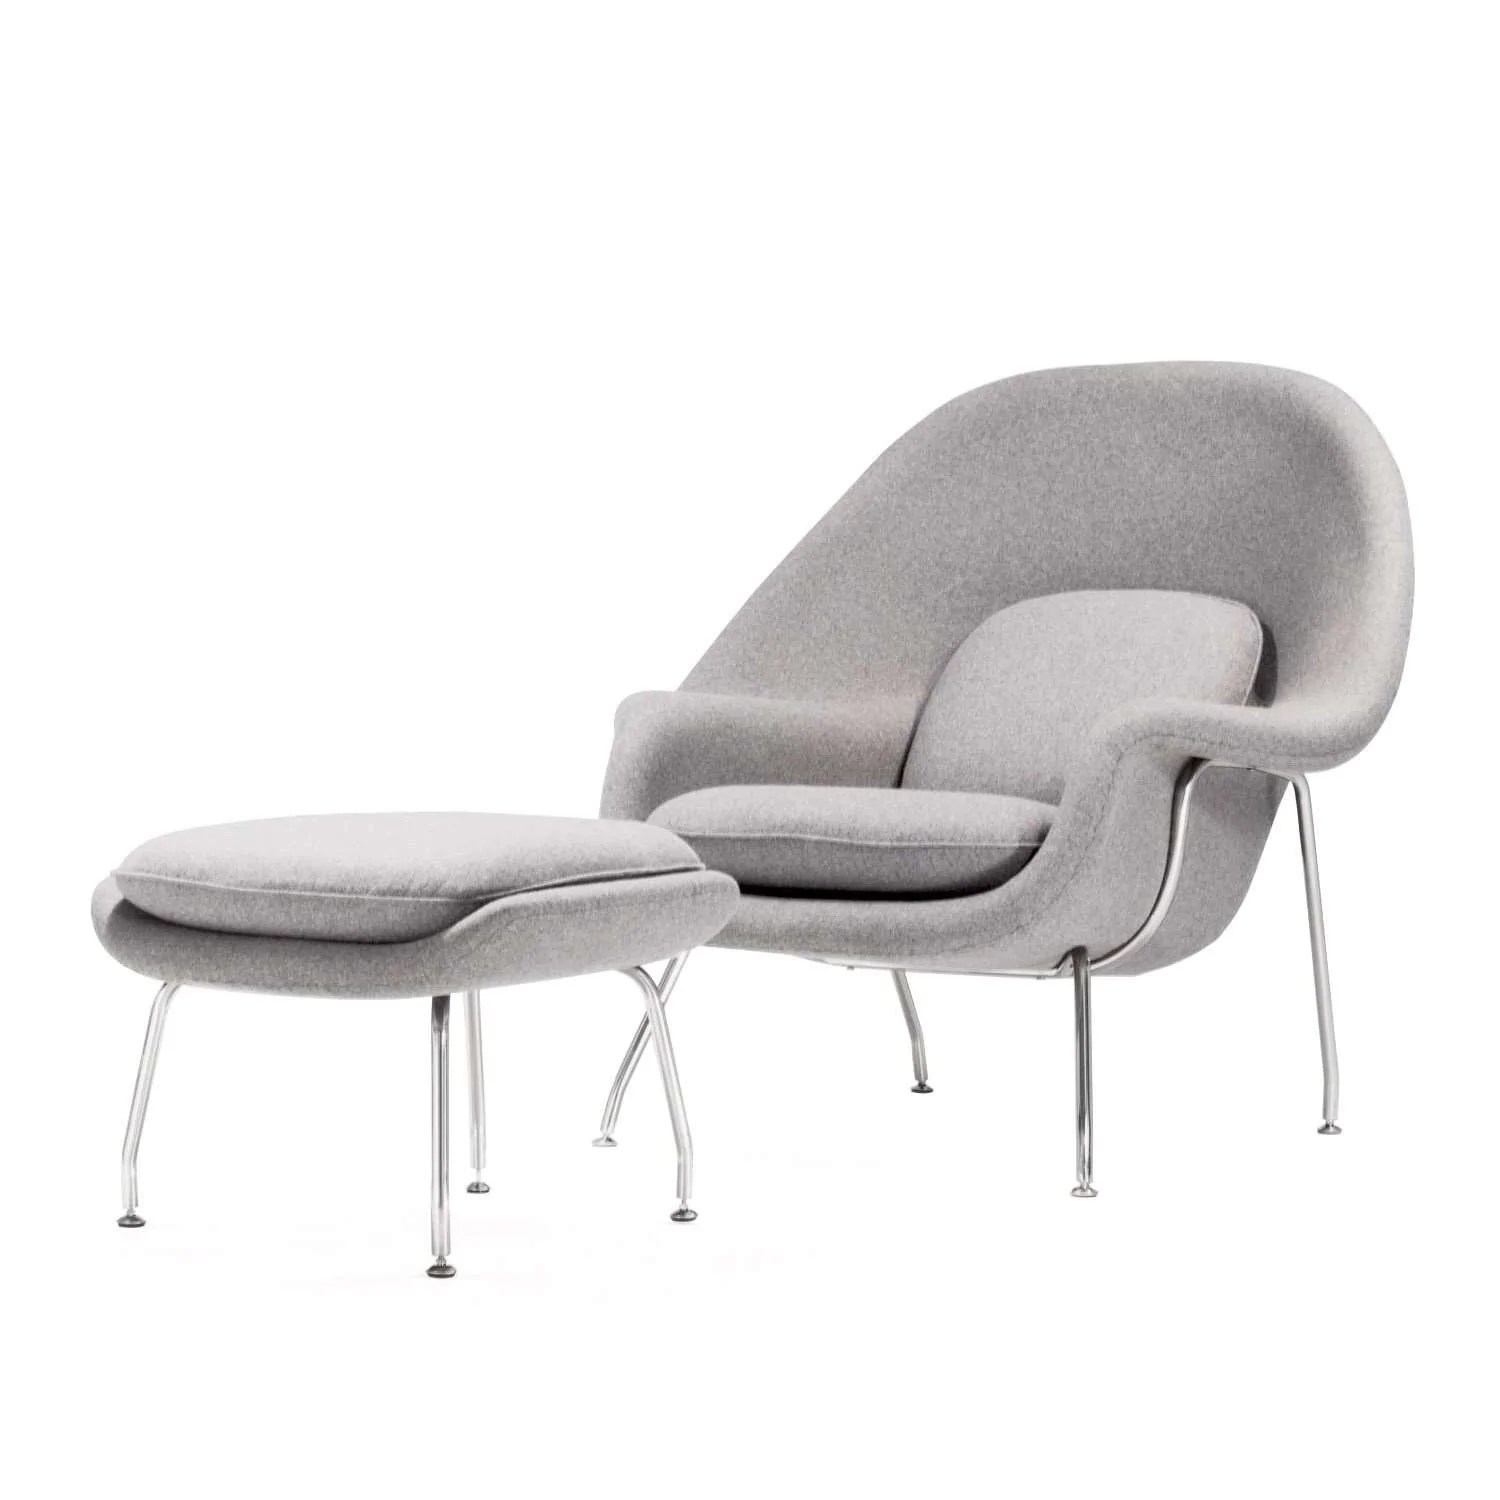 light grey chair electric for stairs mid century modern reproduction womb with wheat wool and ottoman